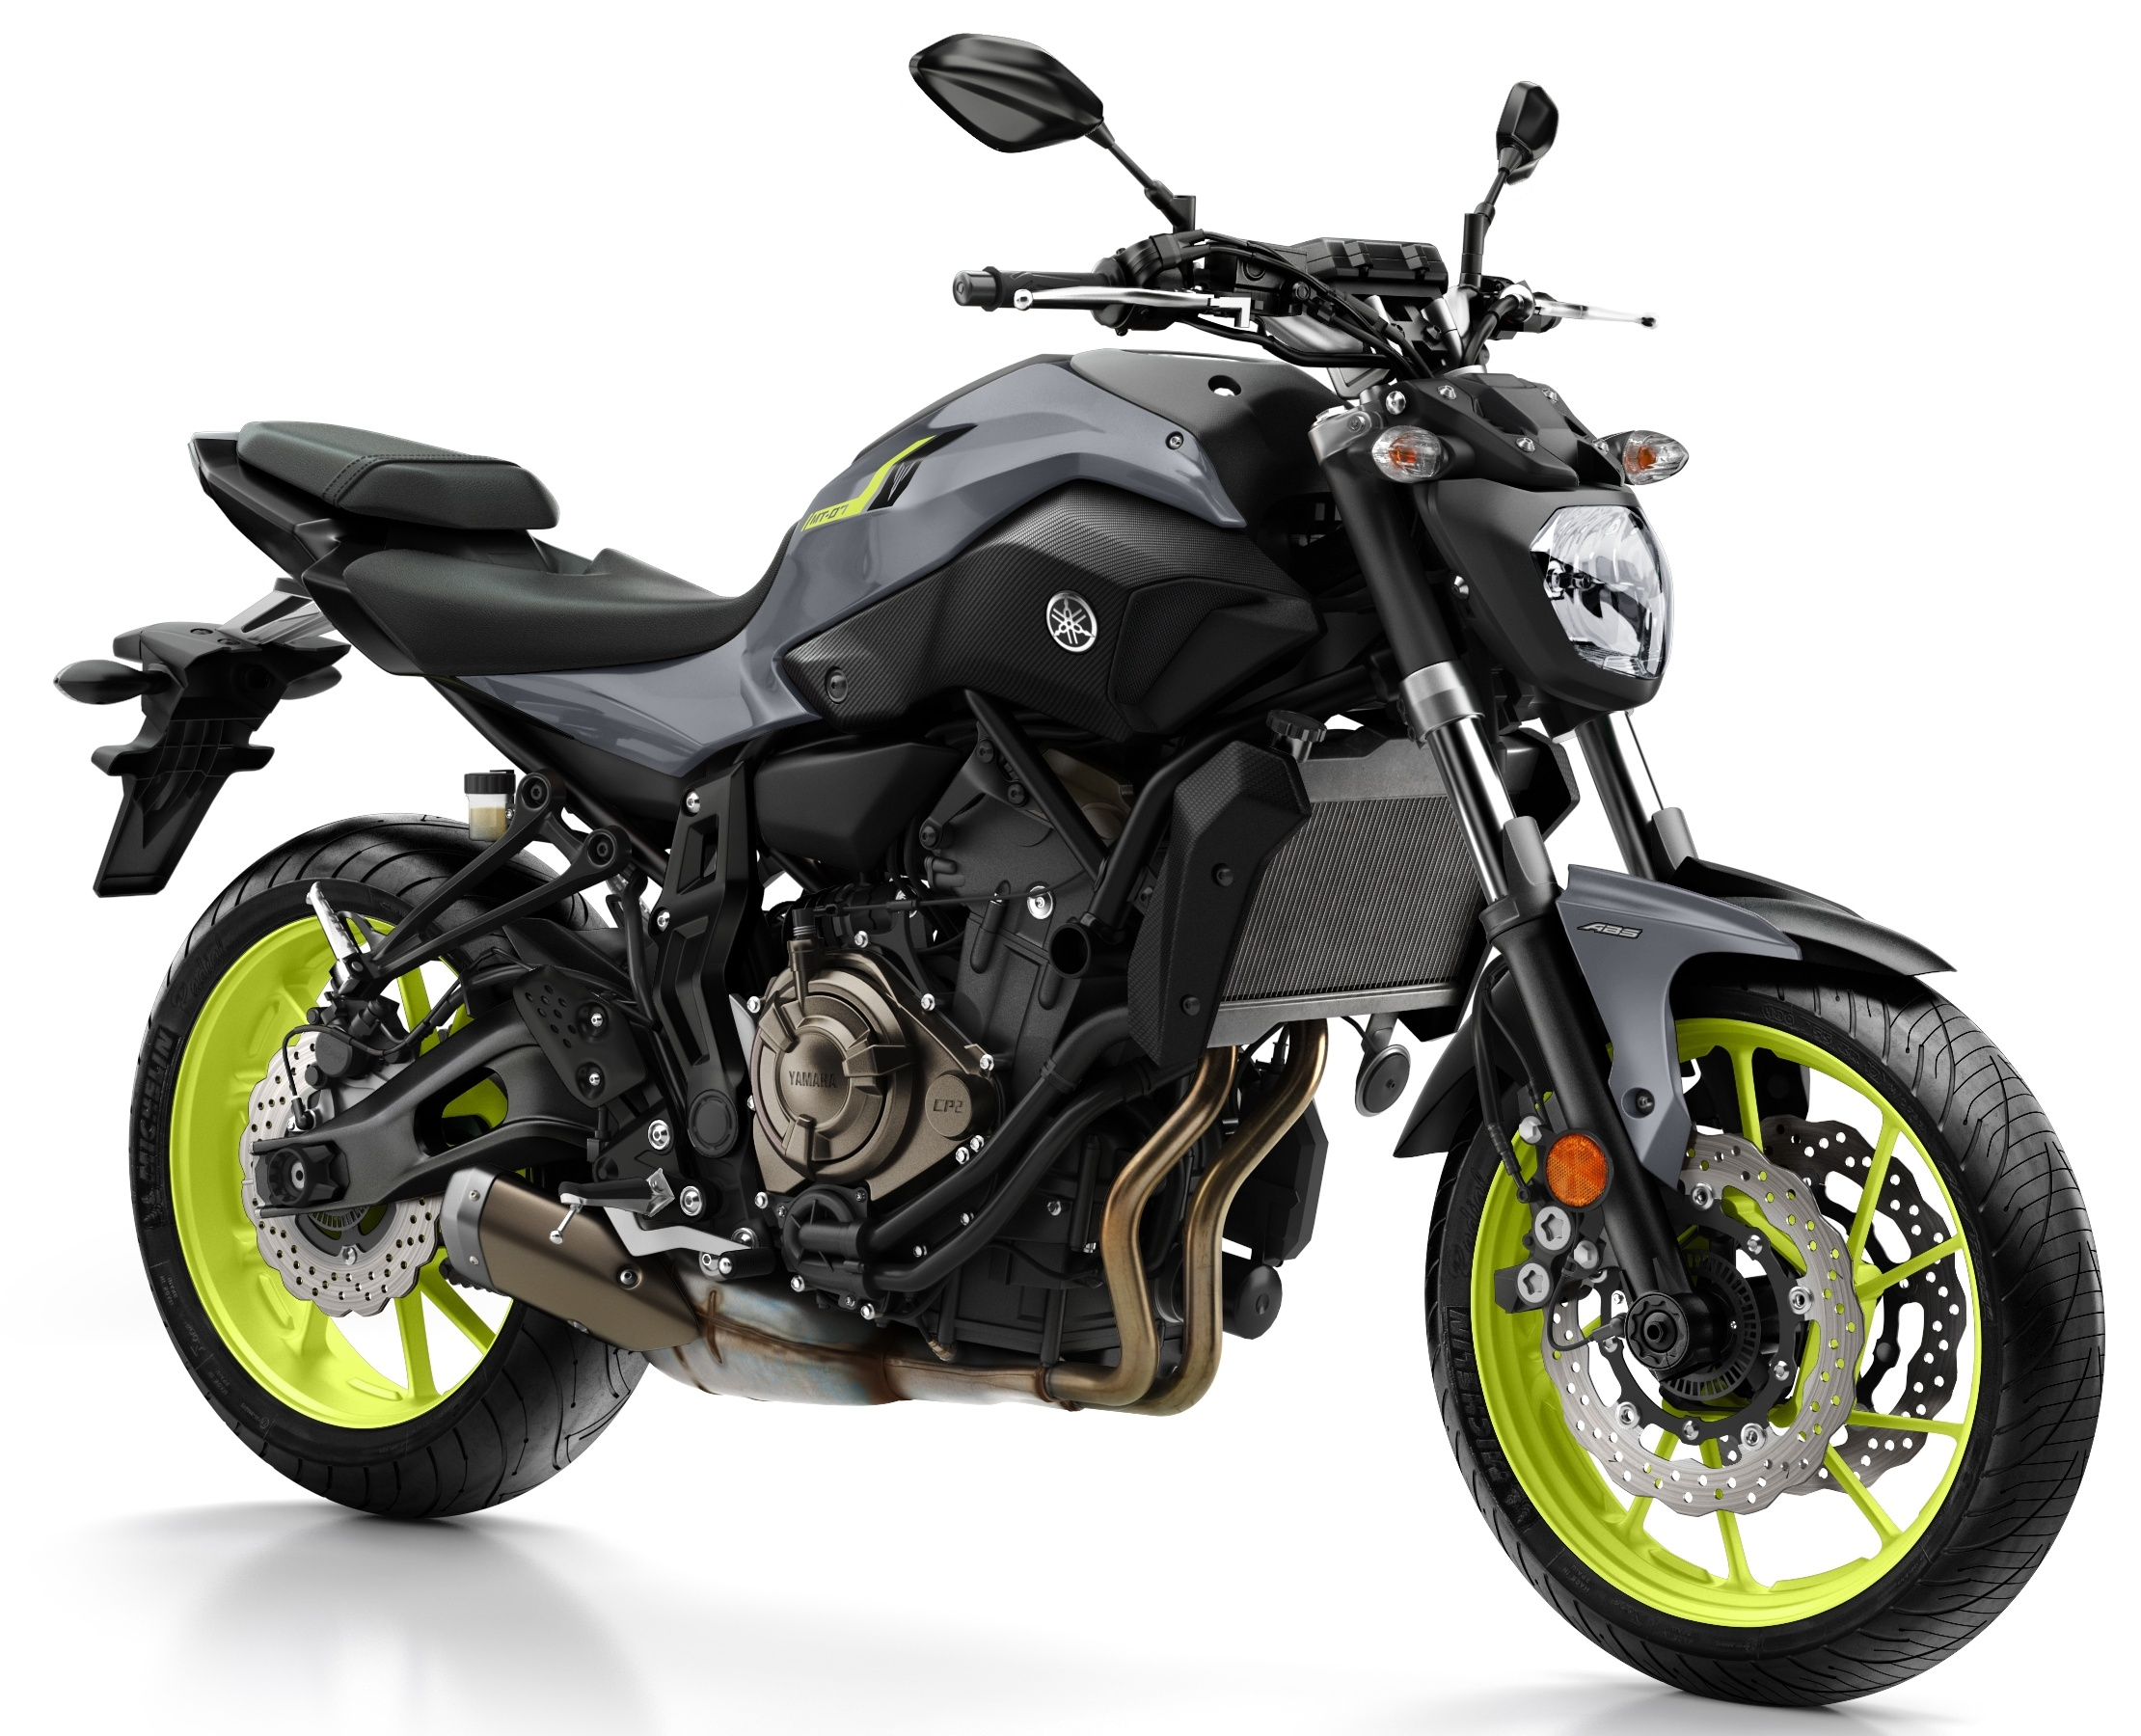 New Yamaha Motorcycles For